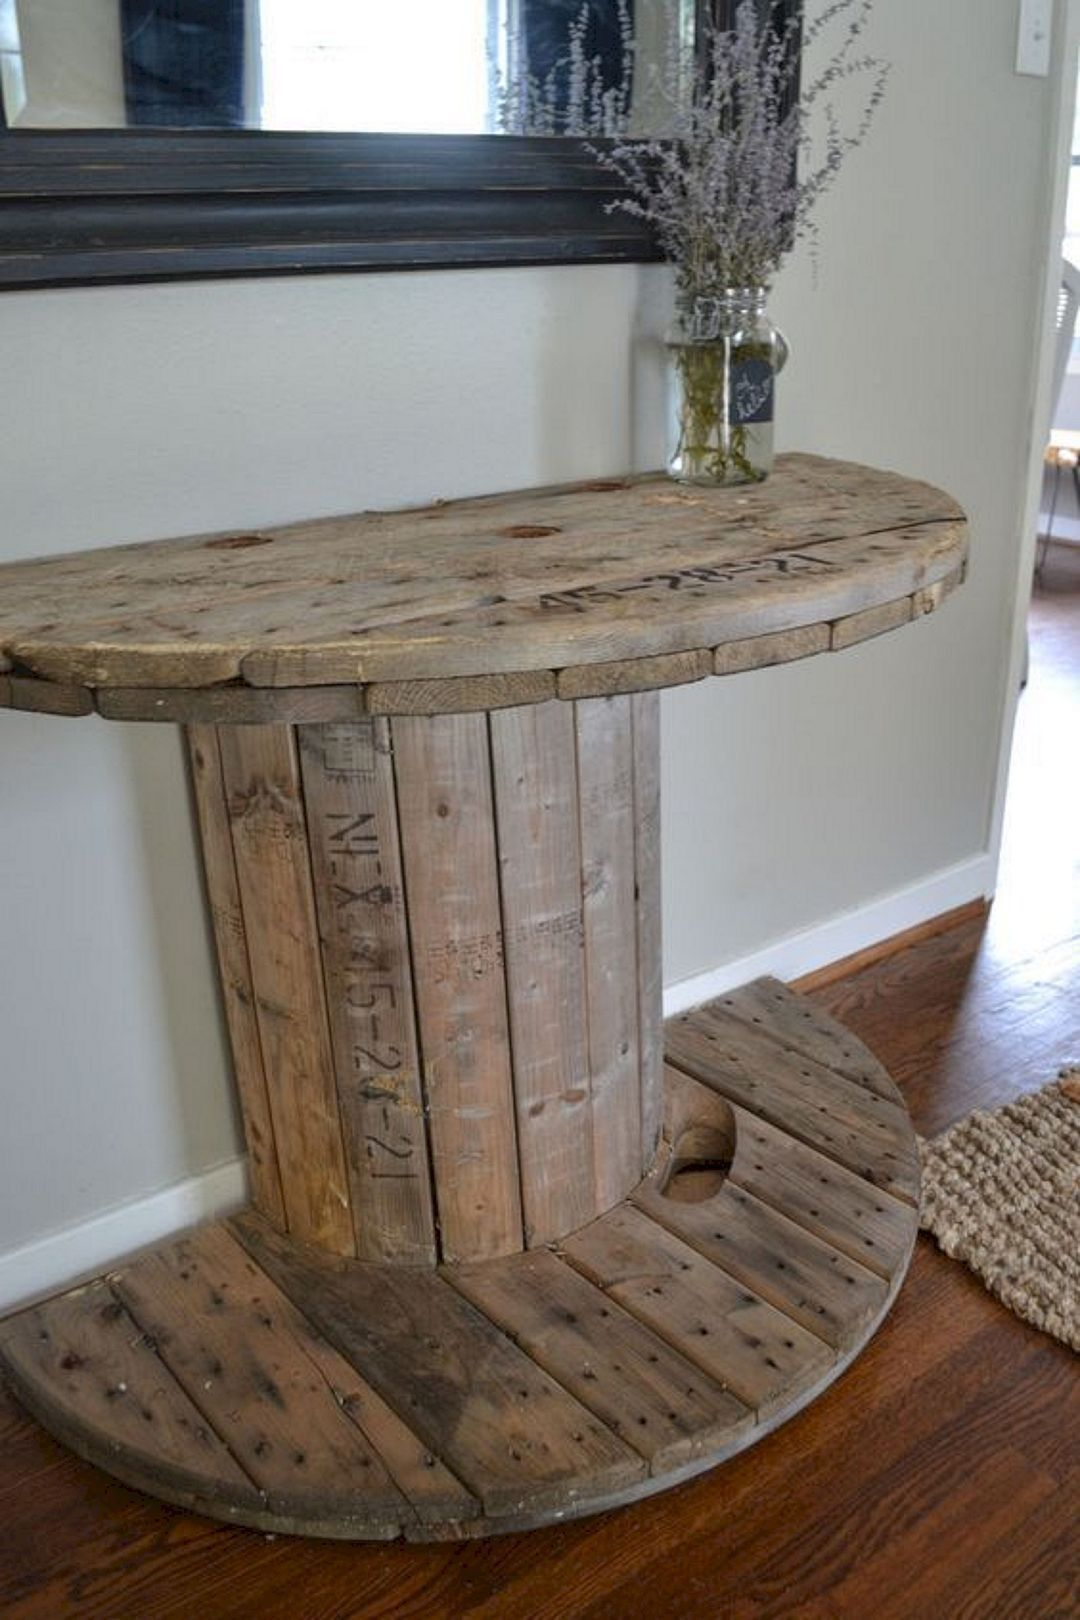 42 Incredible DIY Farmhouse Wooden Project To Upgrade Your Home Decor images